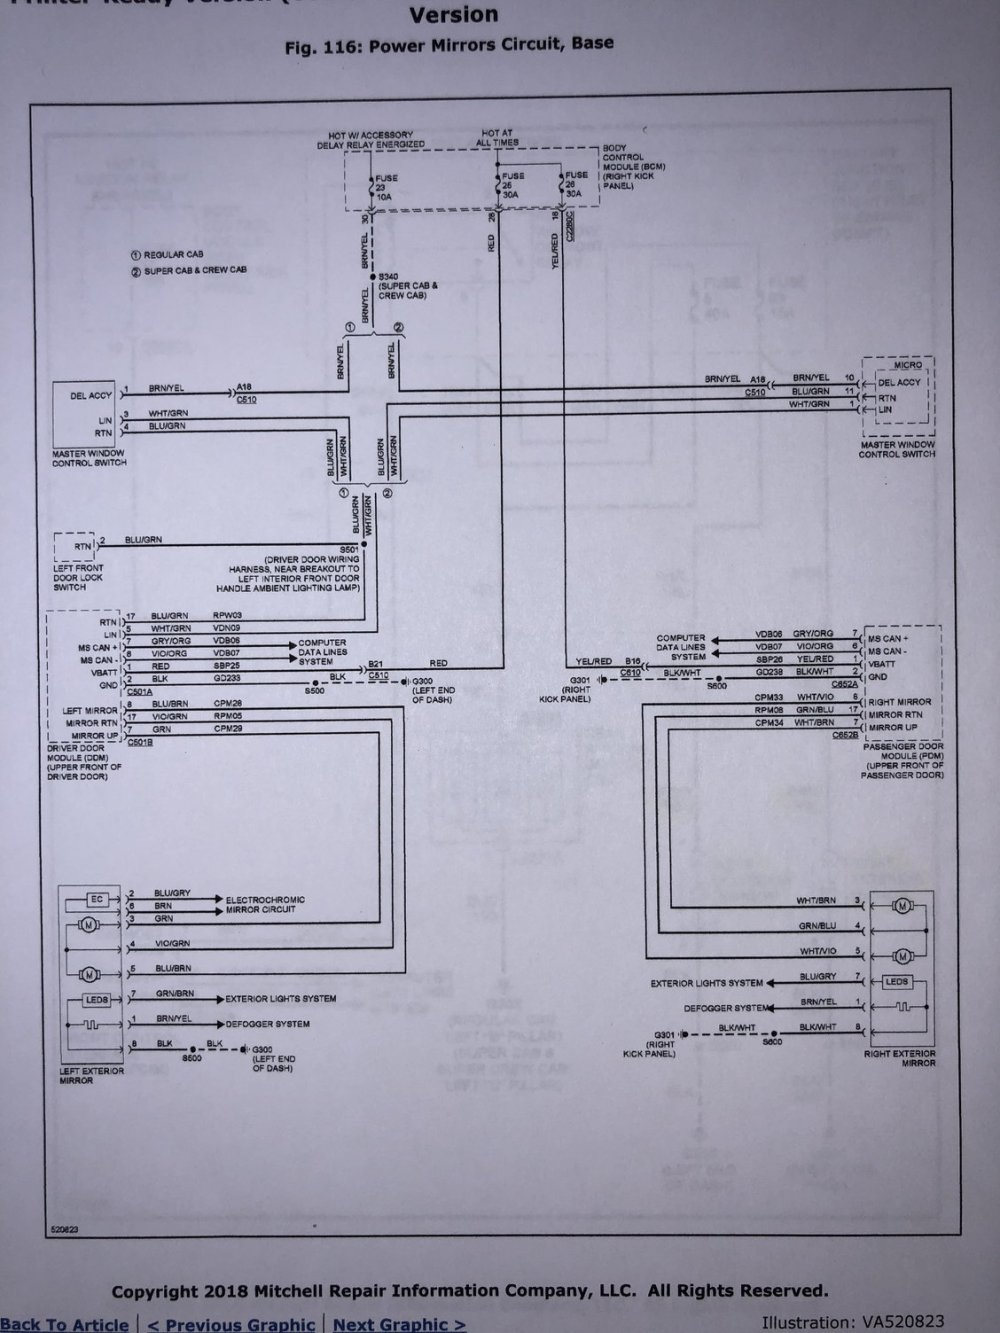 medium resolution of my notes not clean but has all the info for my truck 2018 xl the wiring diagrams are for a 2017 since they haven t released to new drawings yet